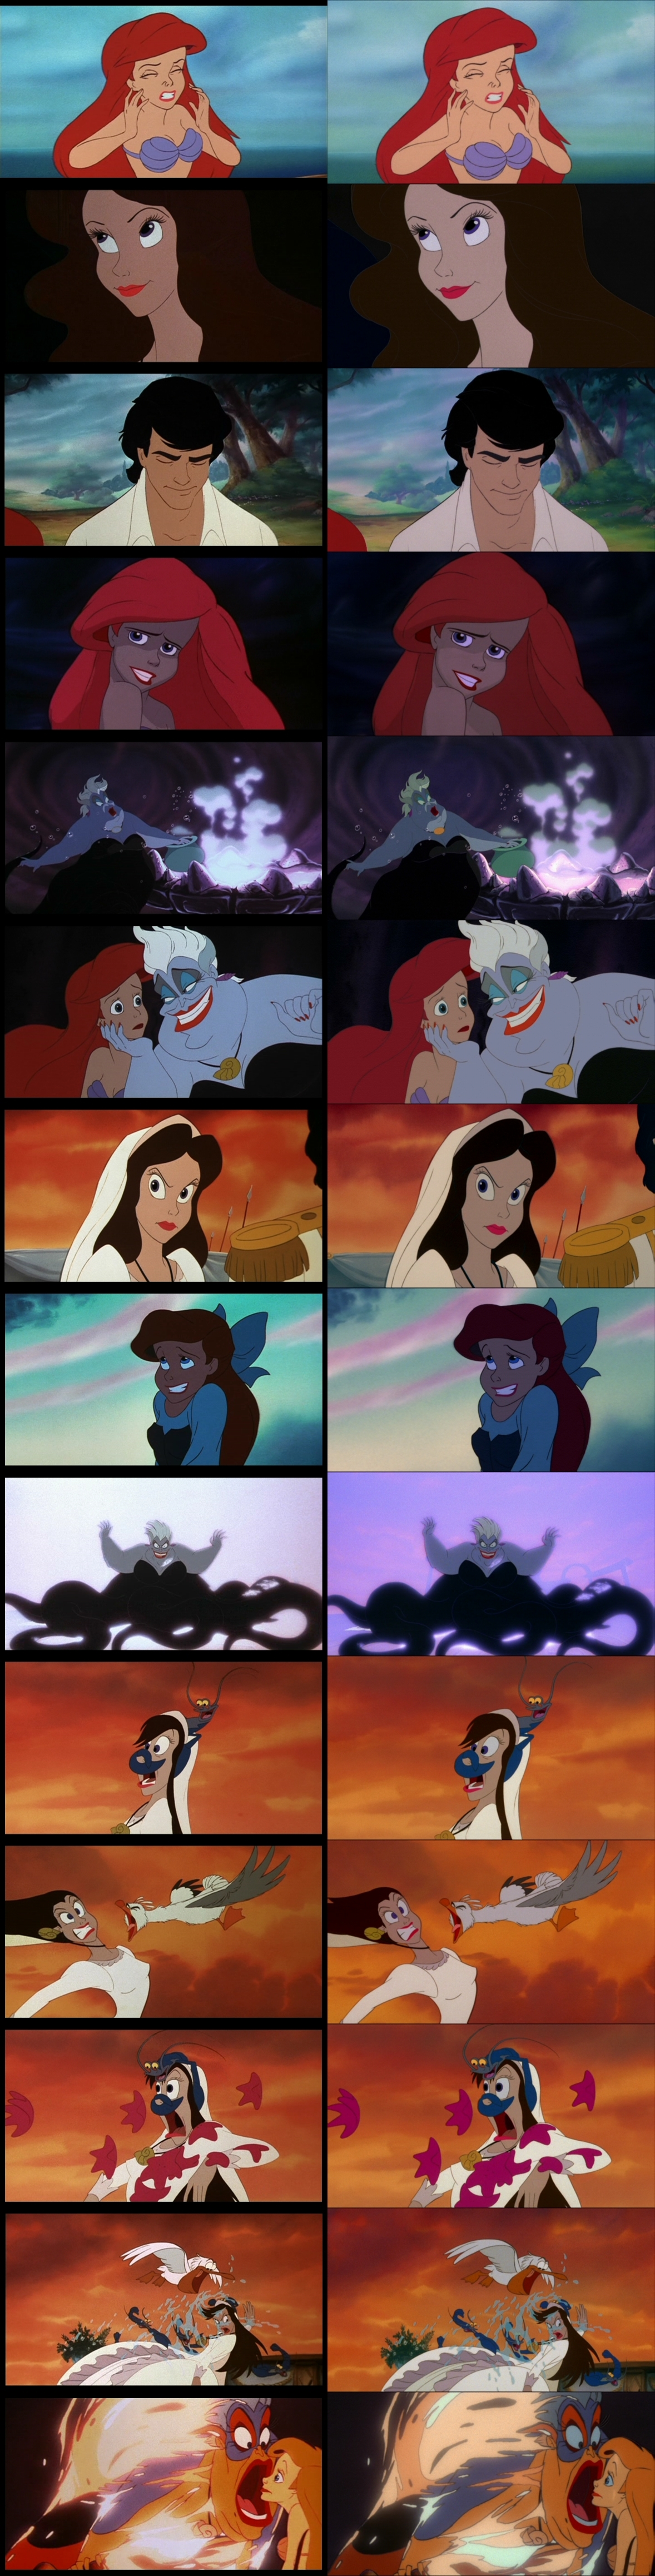 Beauty and the beast: diamond edition – animated views.